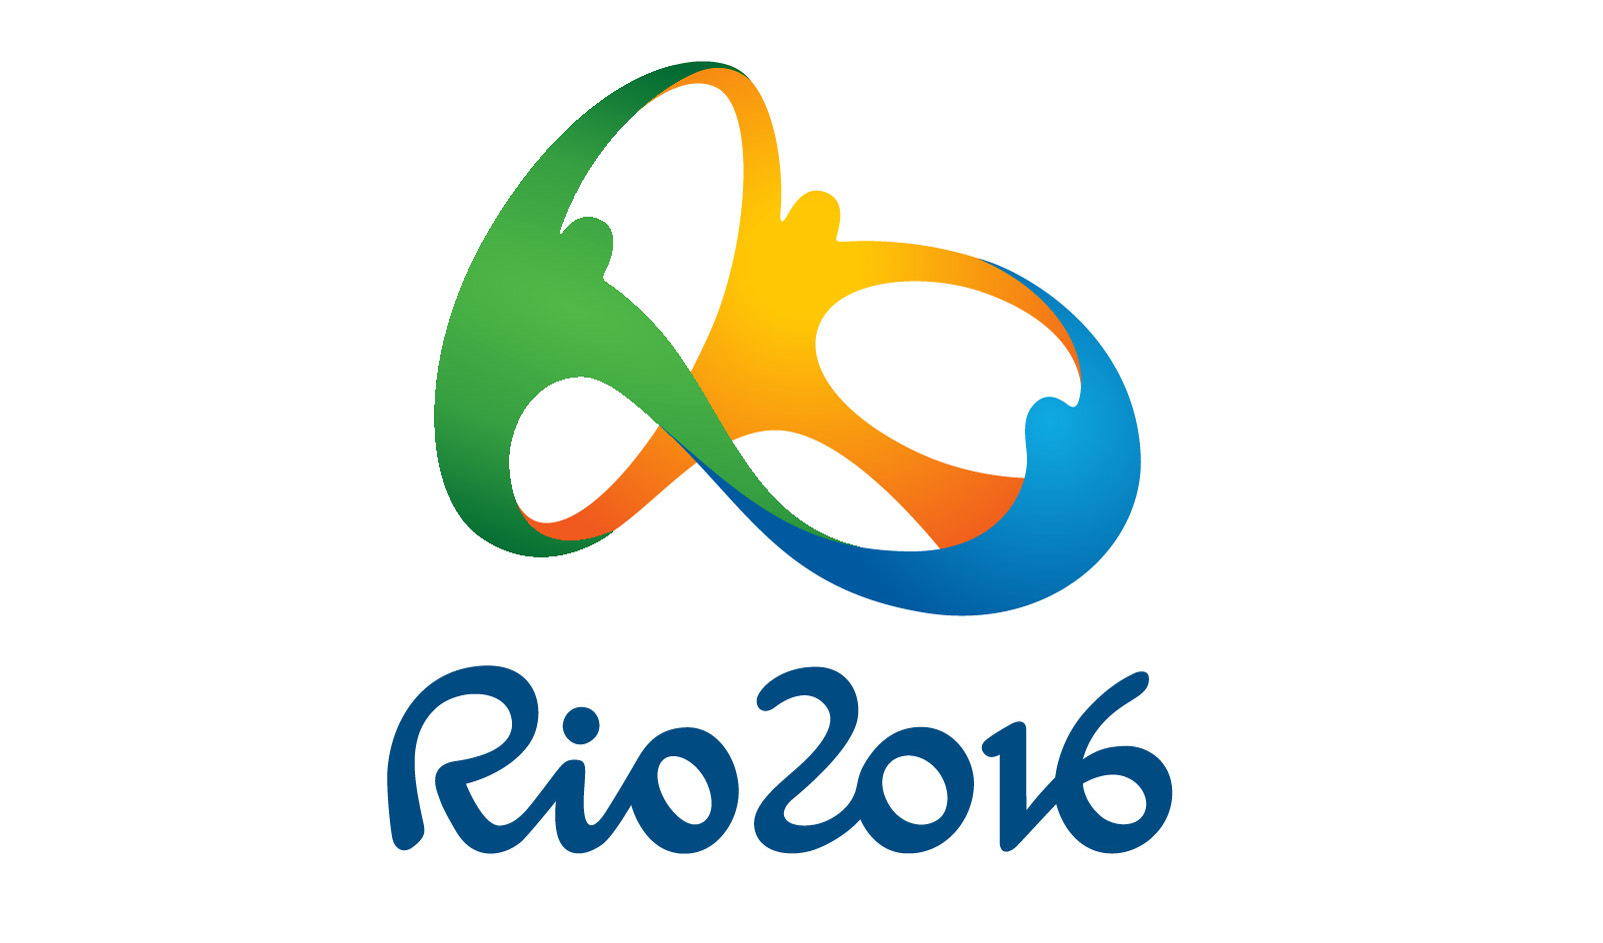 Rio 2016 Olympic Logo Vector Graphic_5